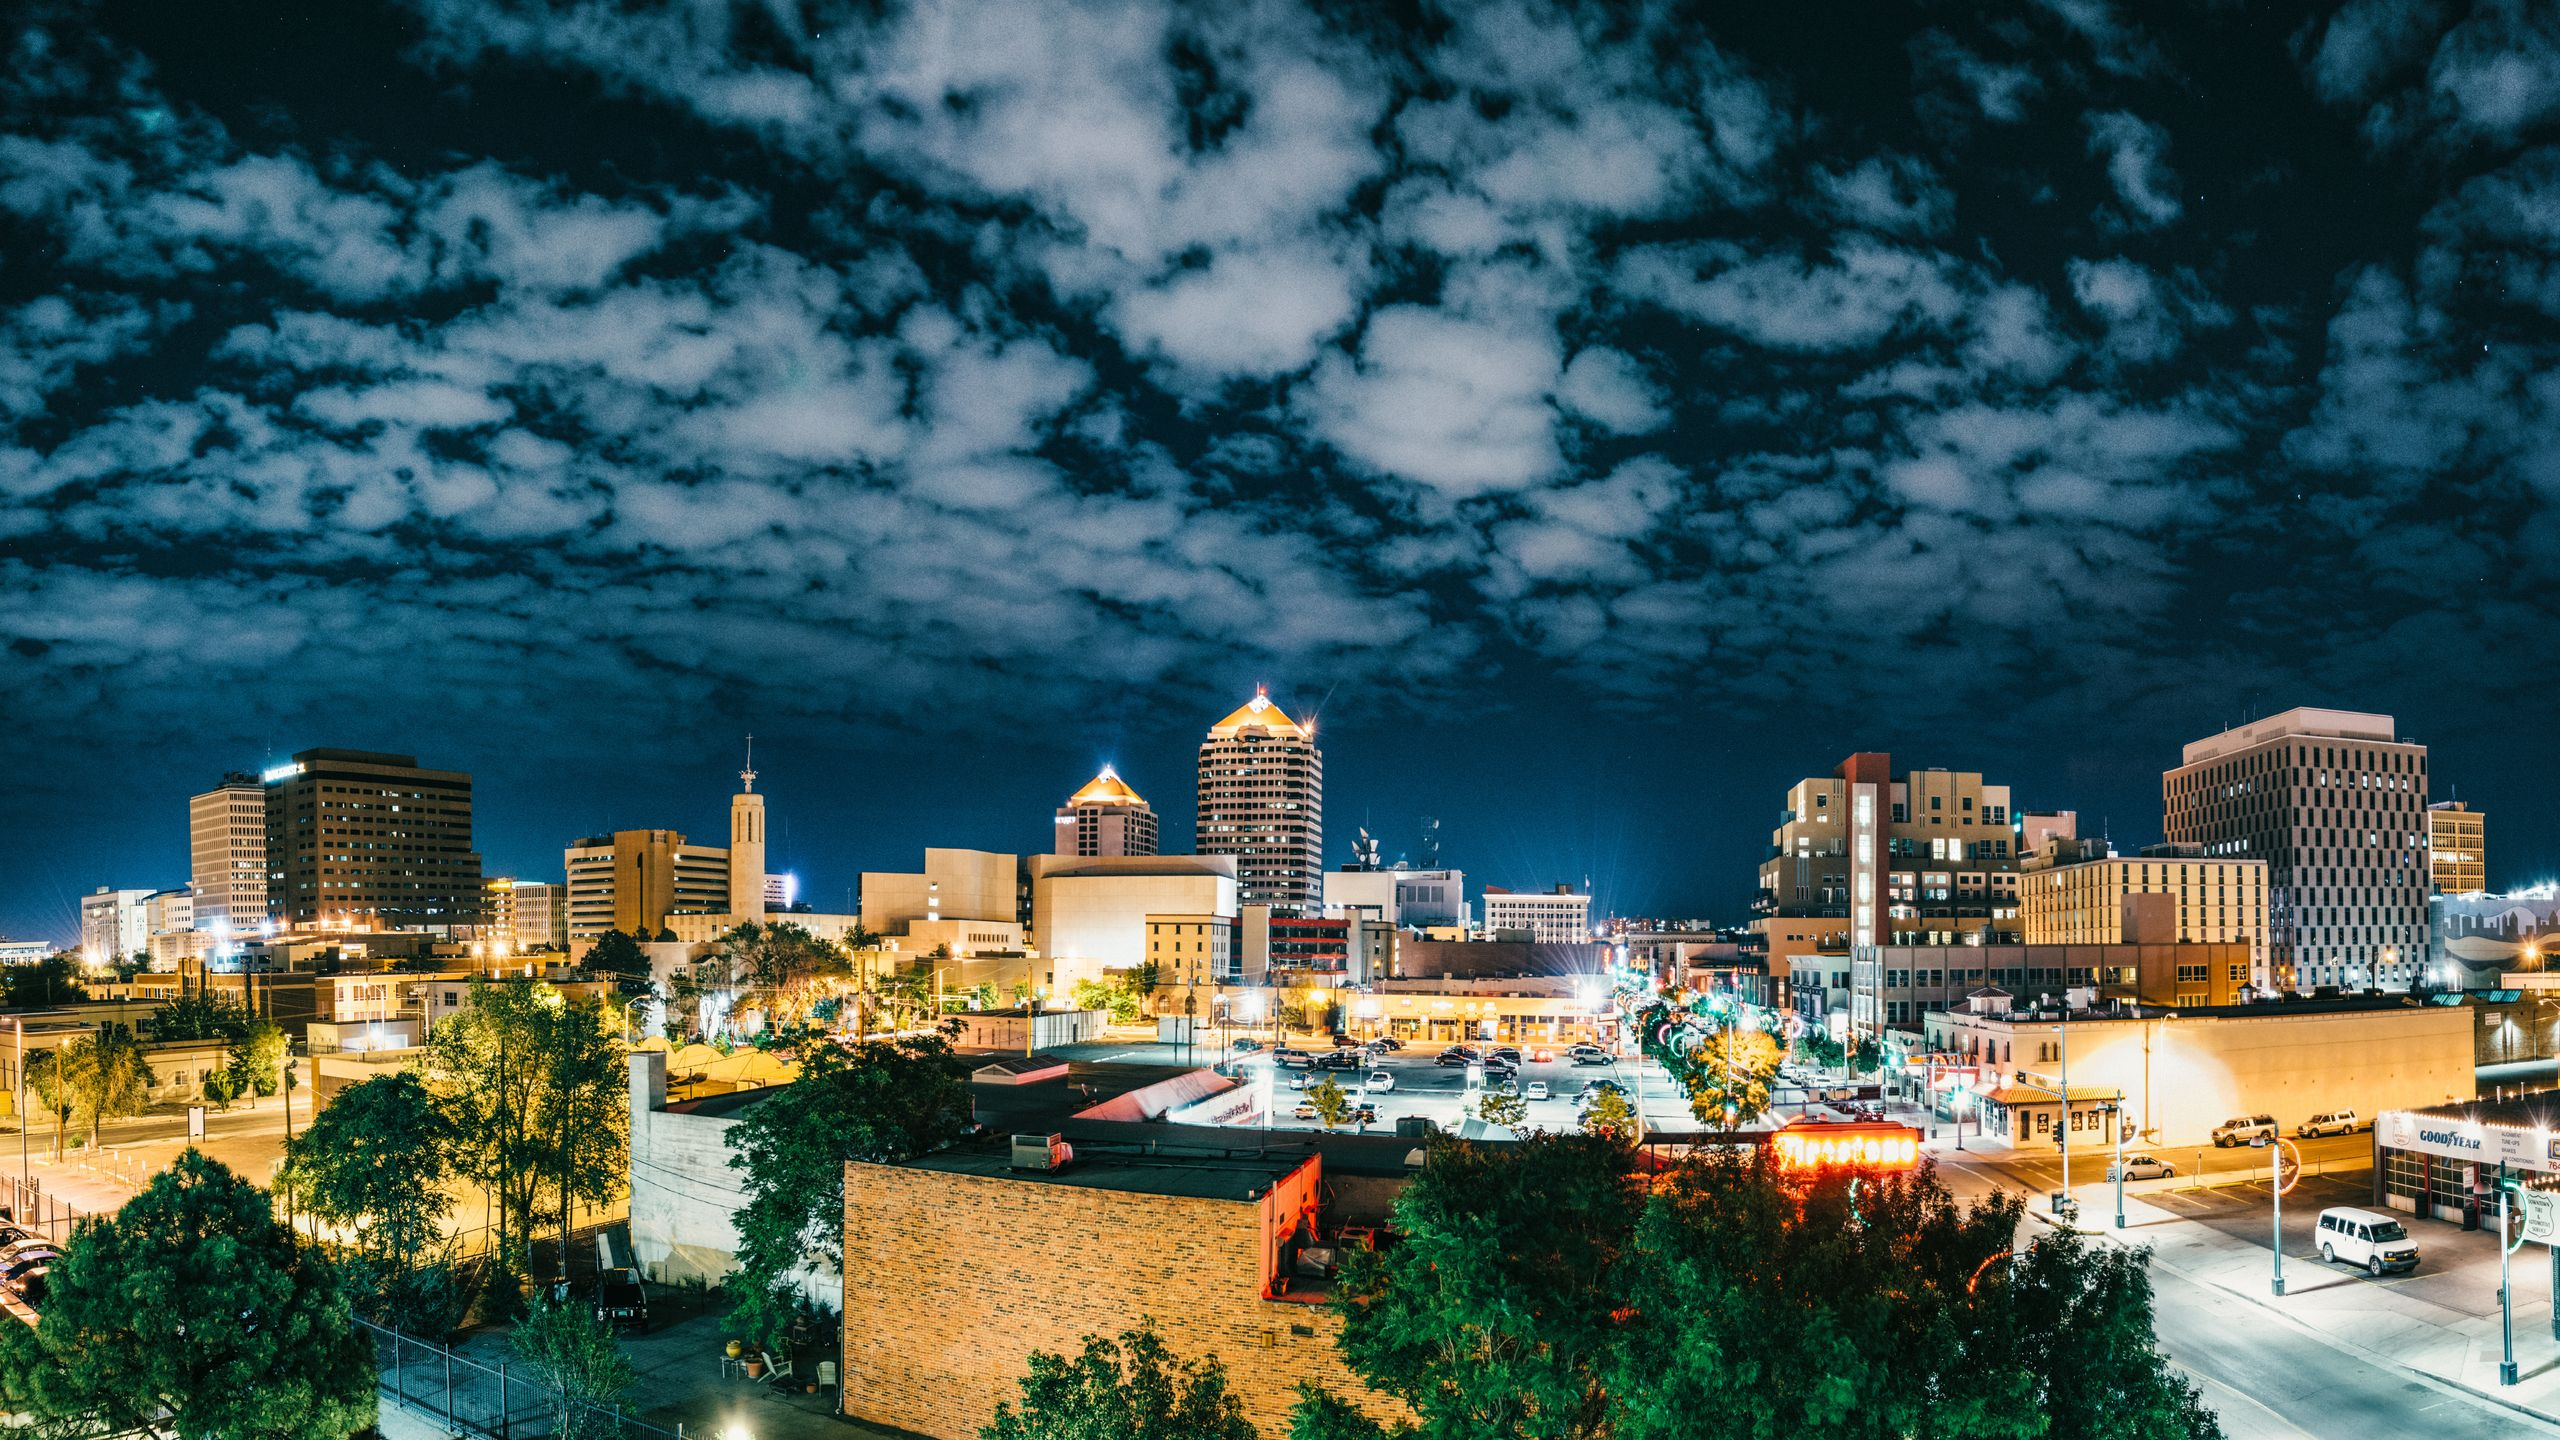 Downtown Albuquerque at night. The most recent federal monitor's report found APD to be 47 percent in operatio